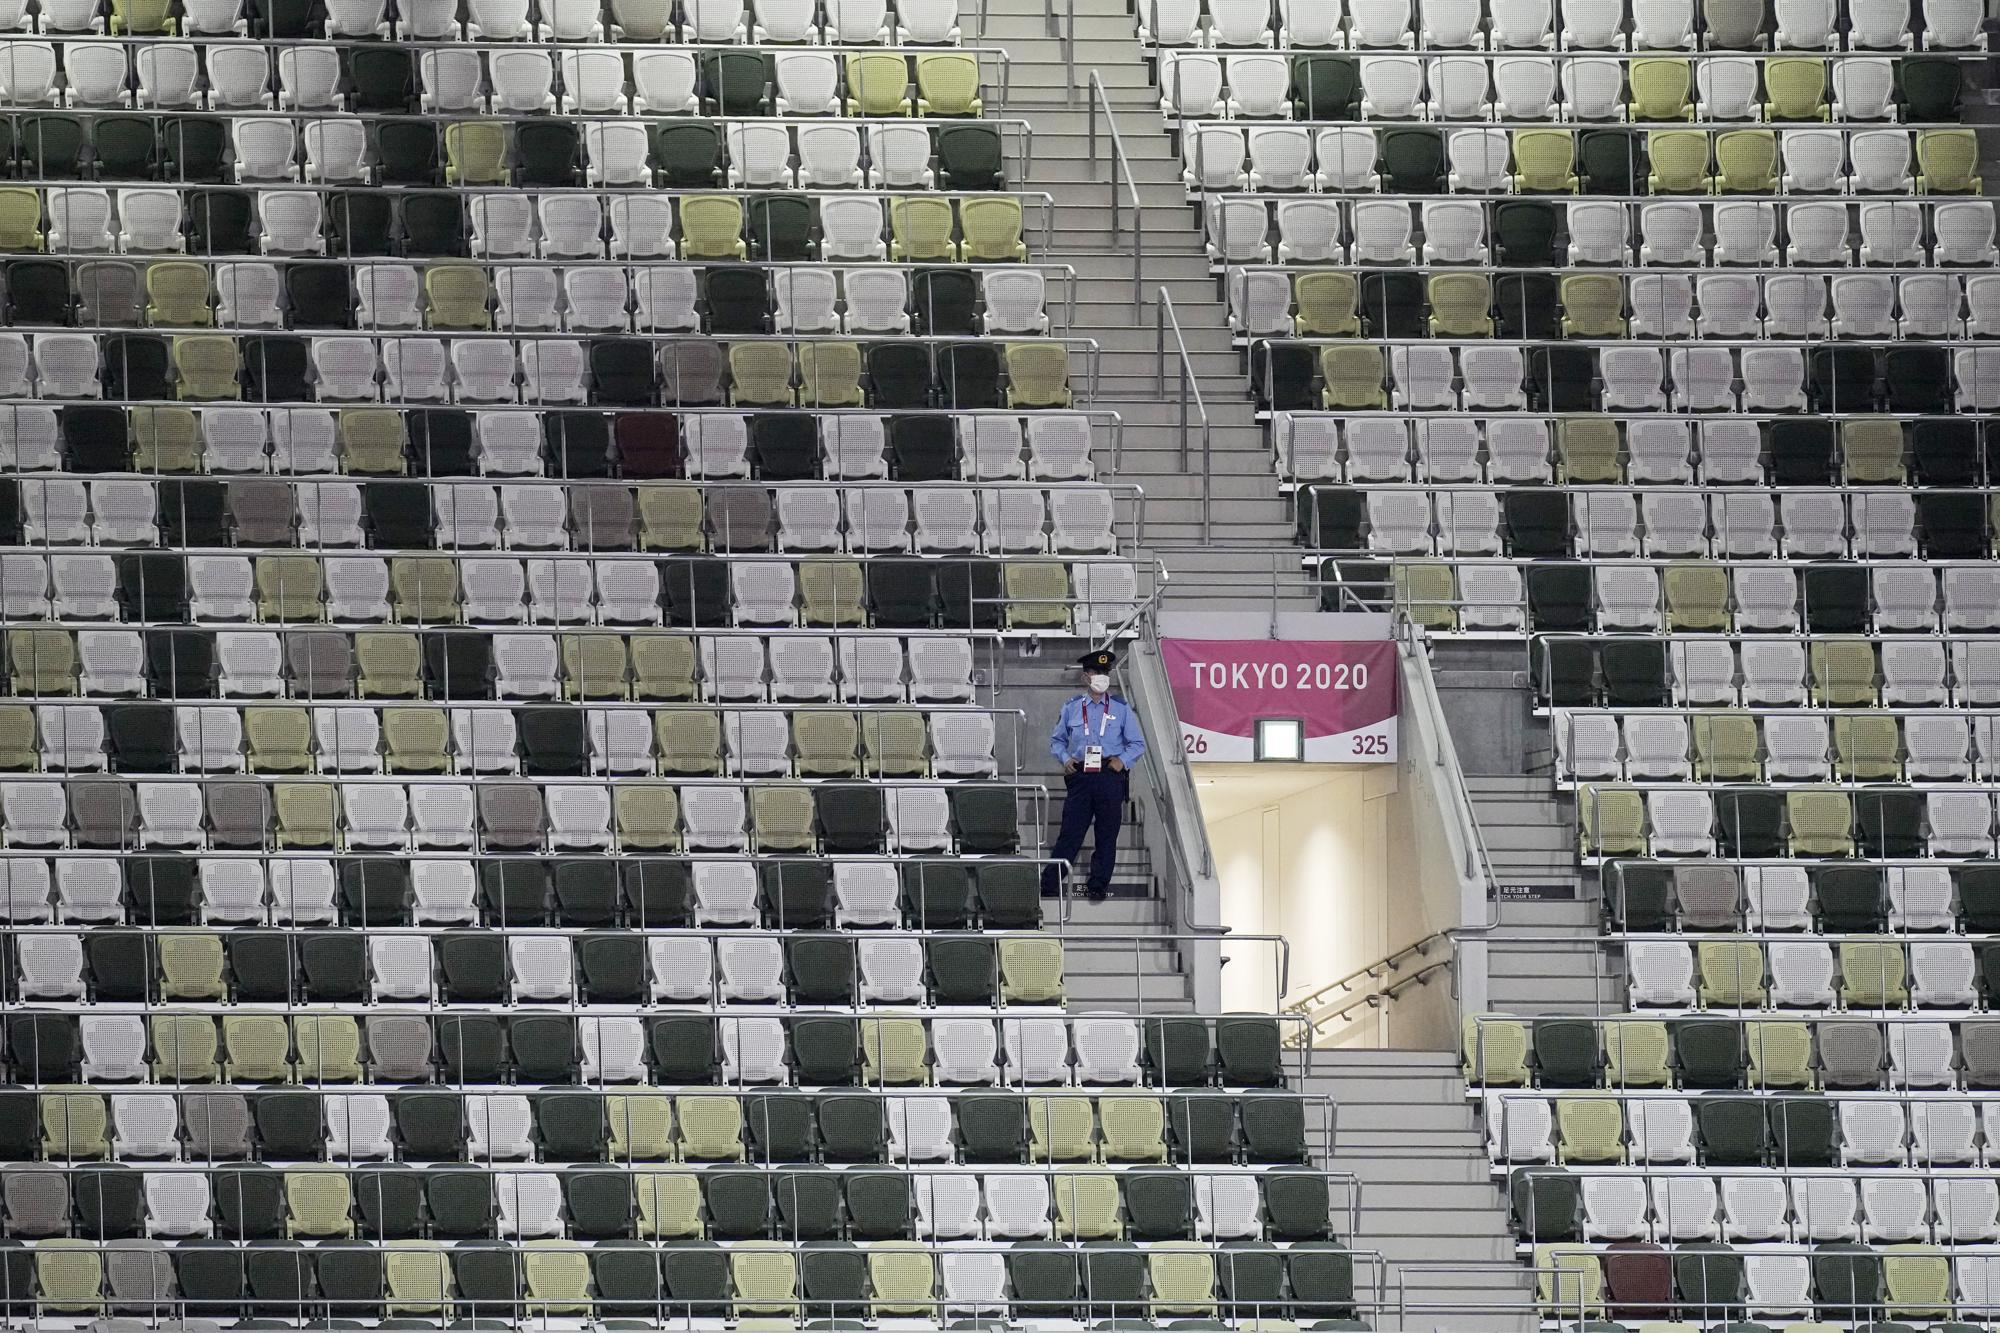 A security officer looks out over an empty stadium before the opening ceremony in the Olympic Stadium at the 2020 Summer Olympics, Friday, July 23, 2021, in Tokyo, Japan. (AP Photo/David J. Phillip)